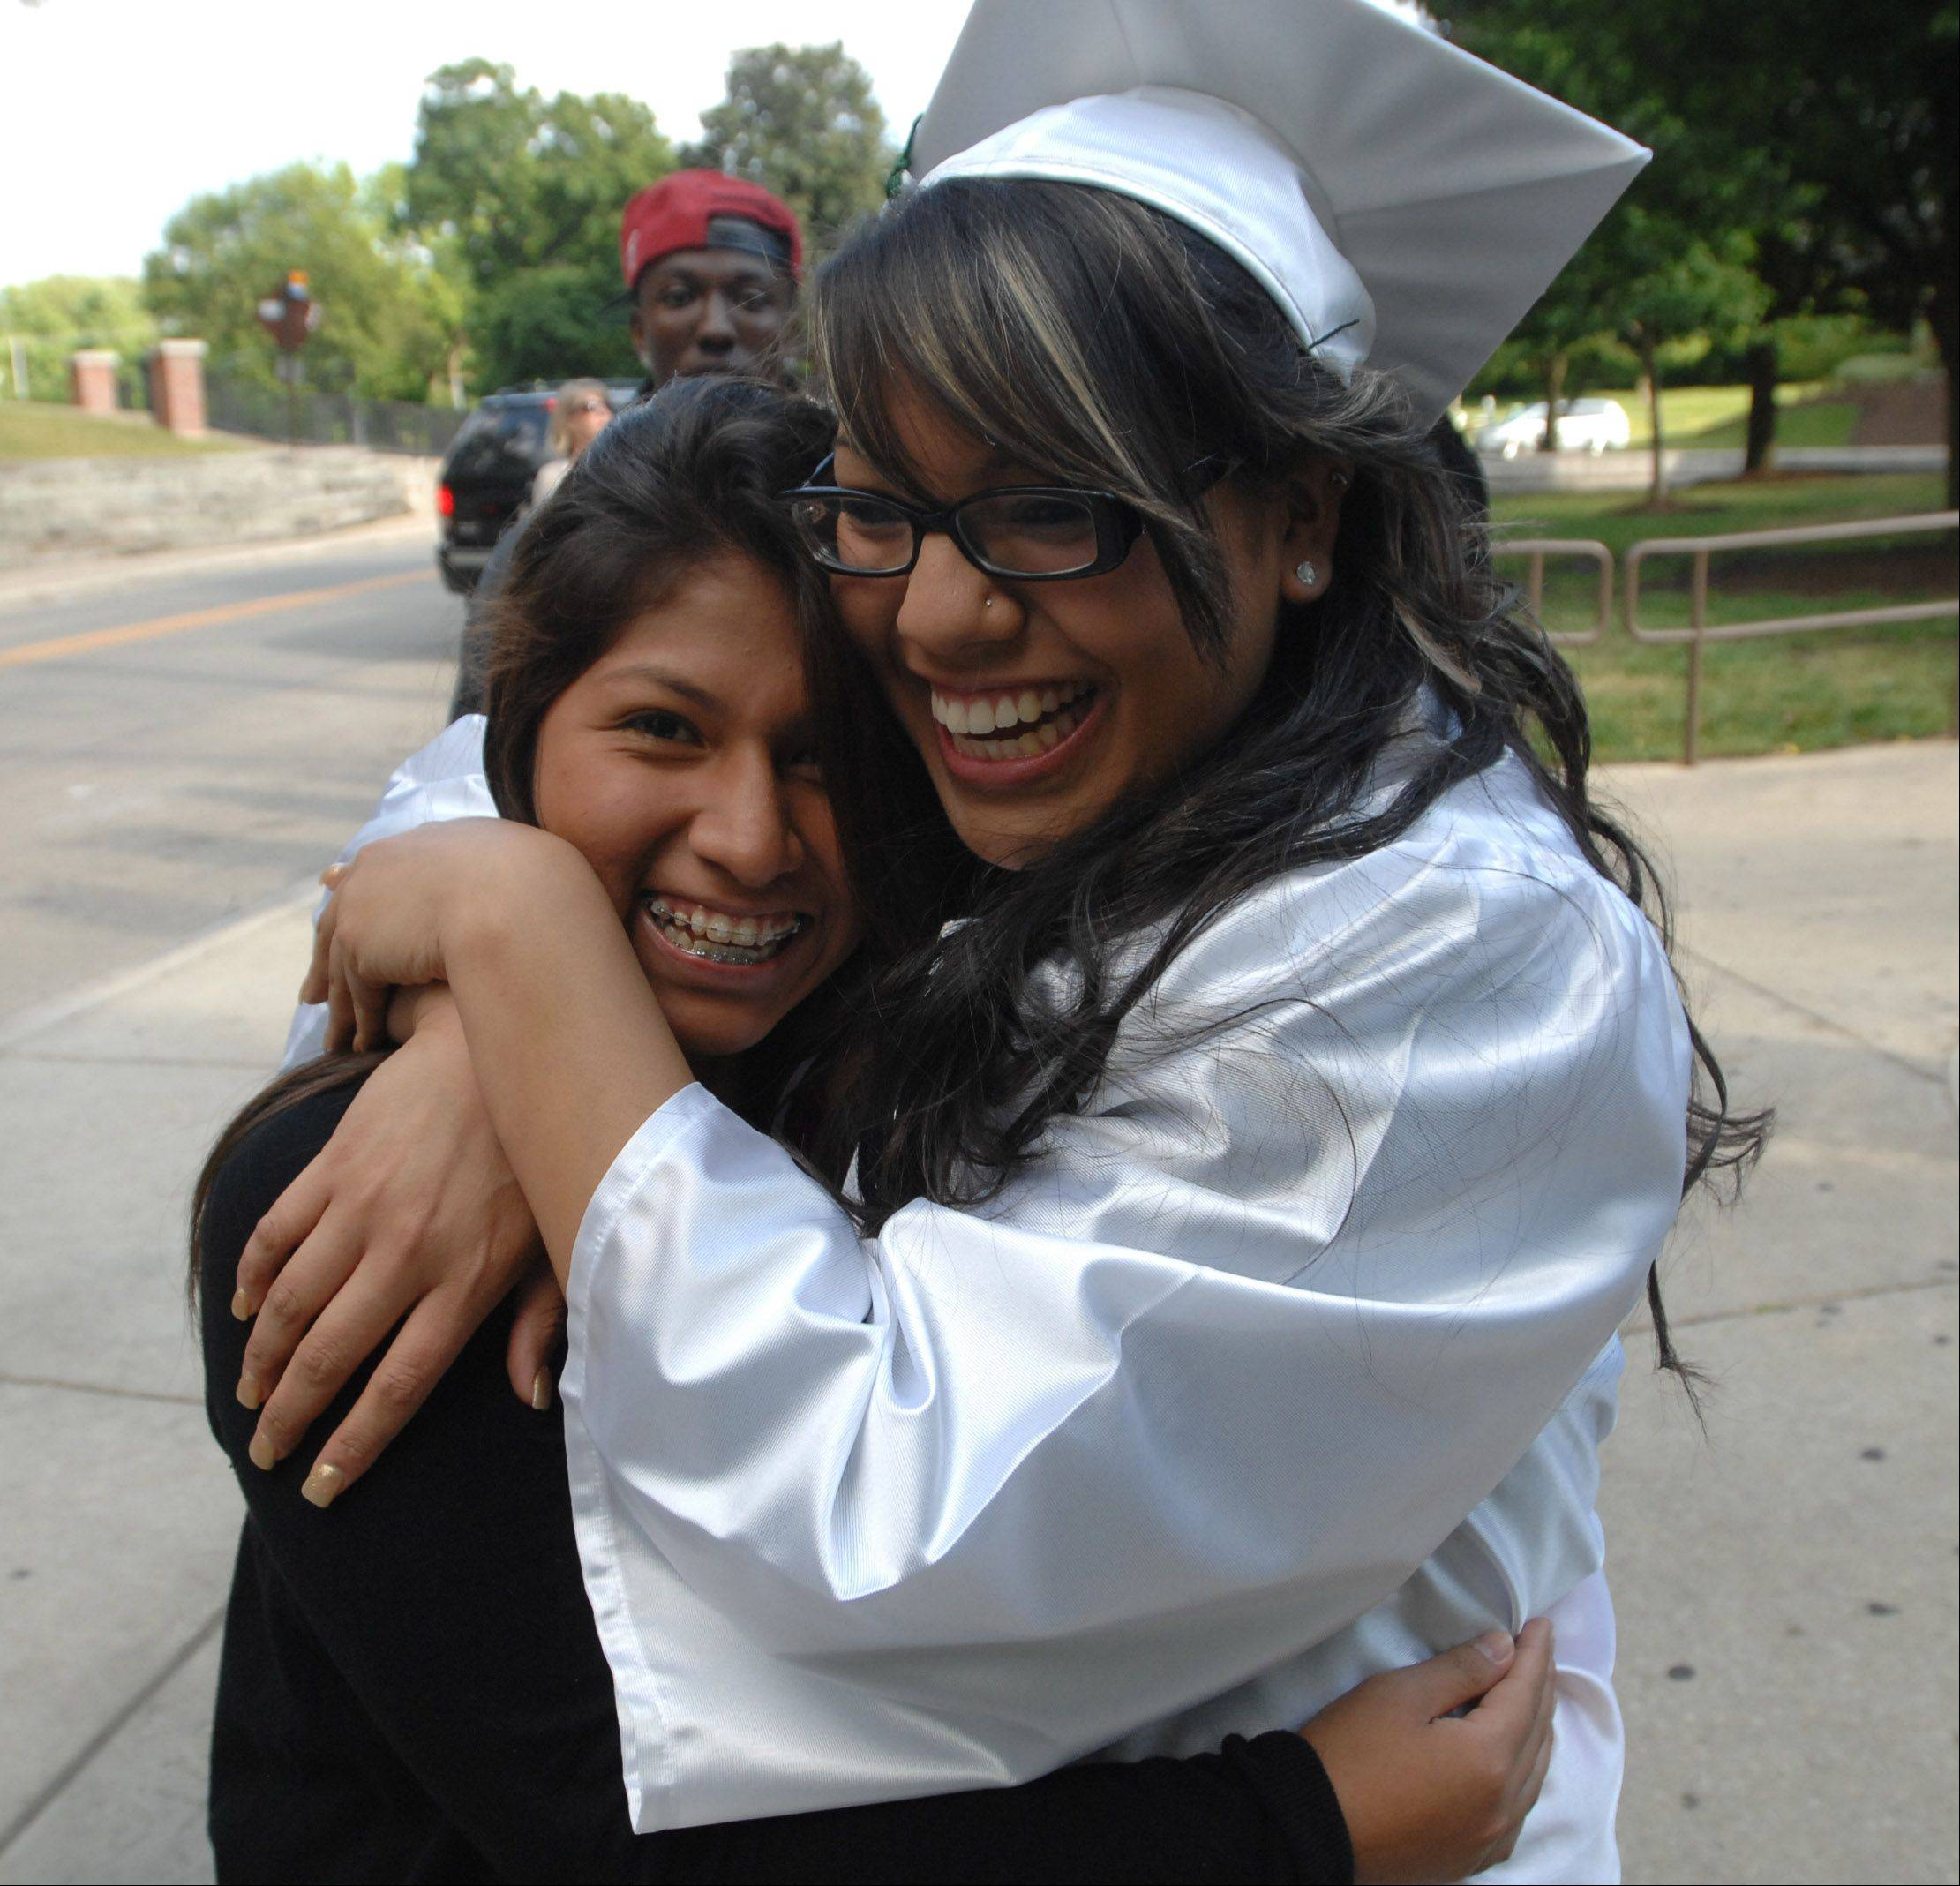 Lucia Flores, left, and Mariah Flores, both of Glendale Heights hug during the Glenbard West graduation in Glen Ellyn Friday. They are friends but not sisters despite the same last name.